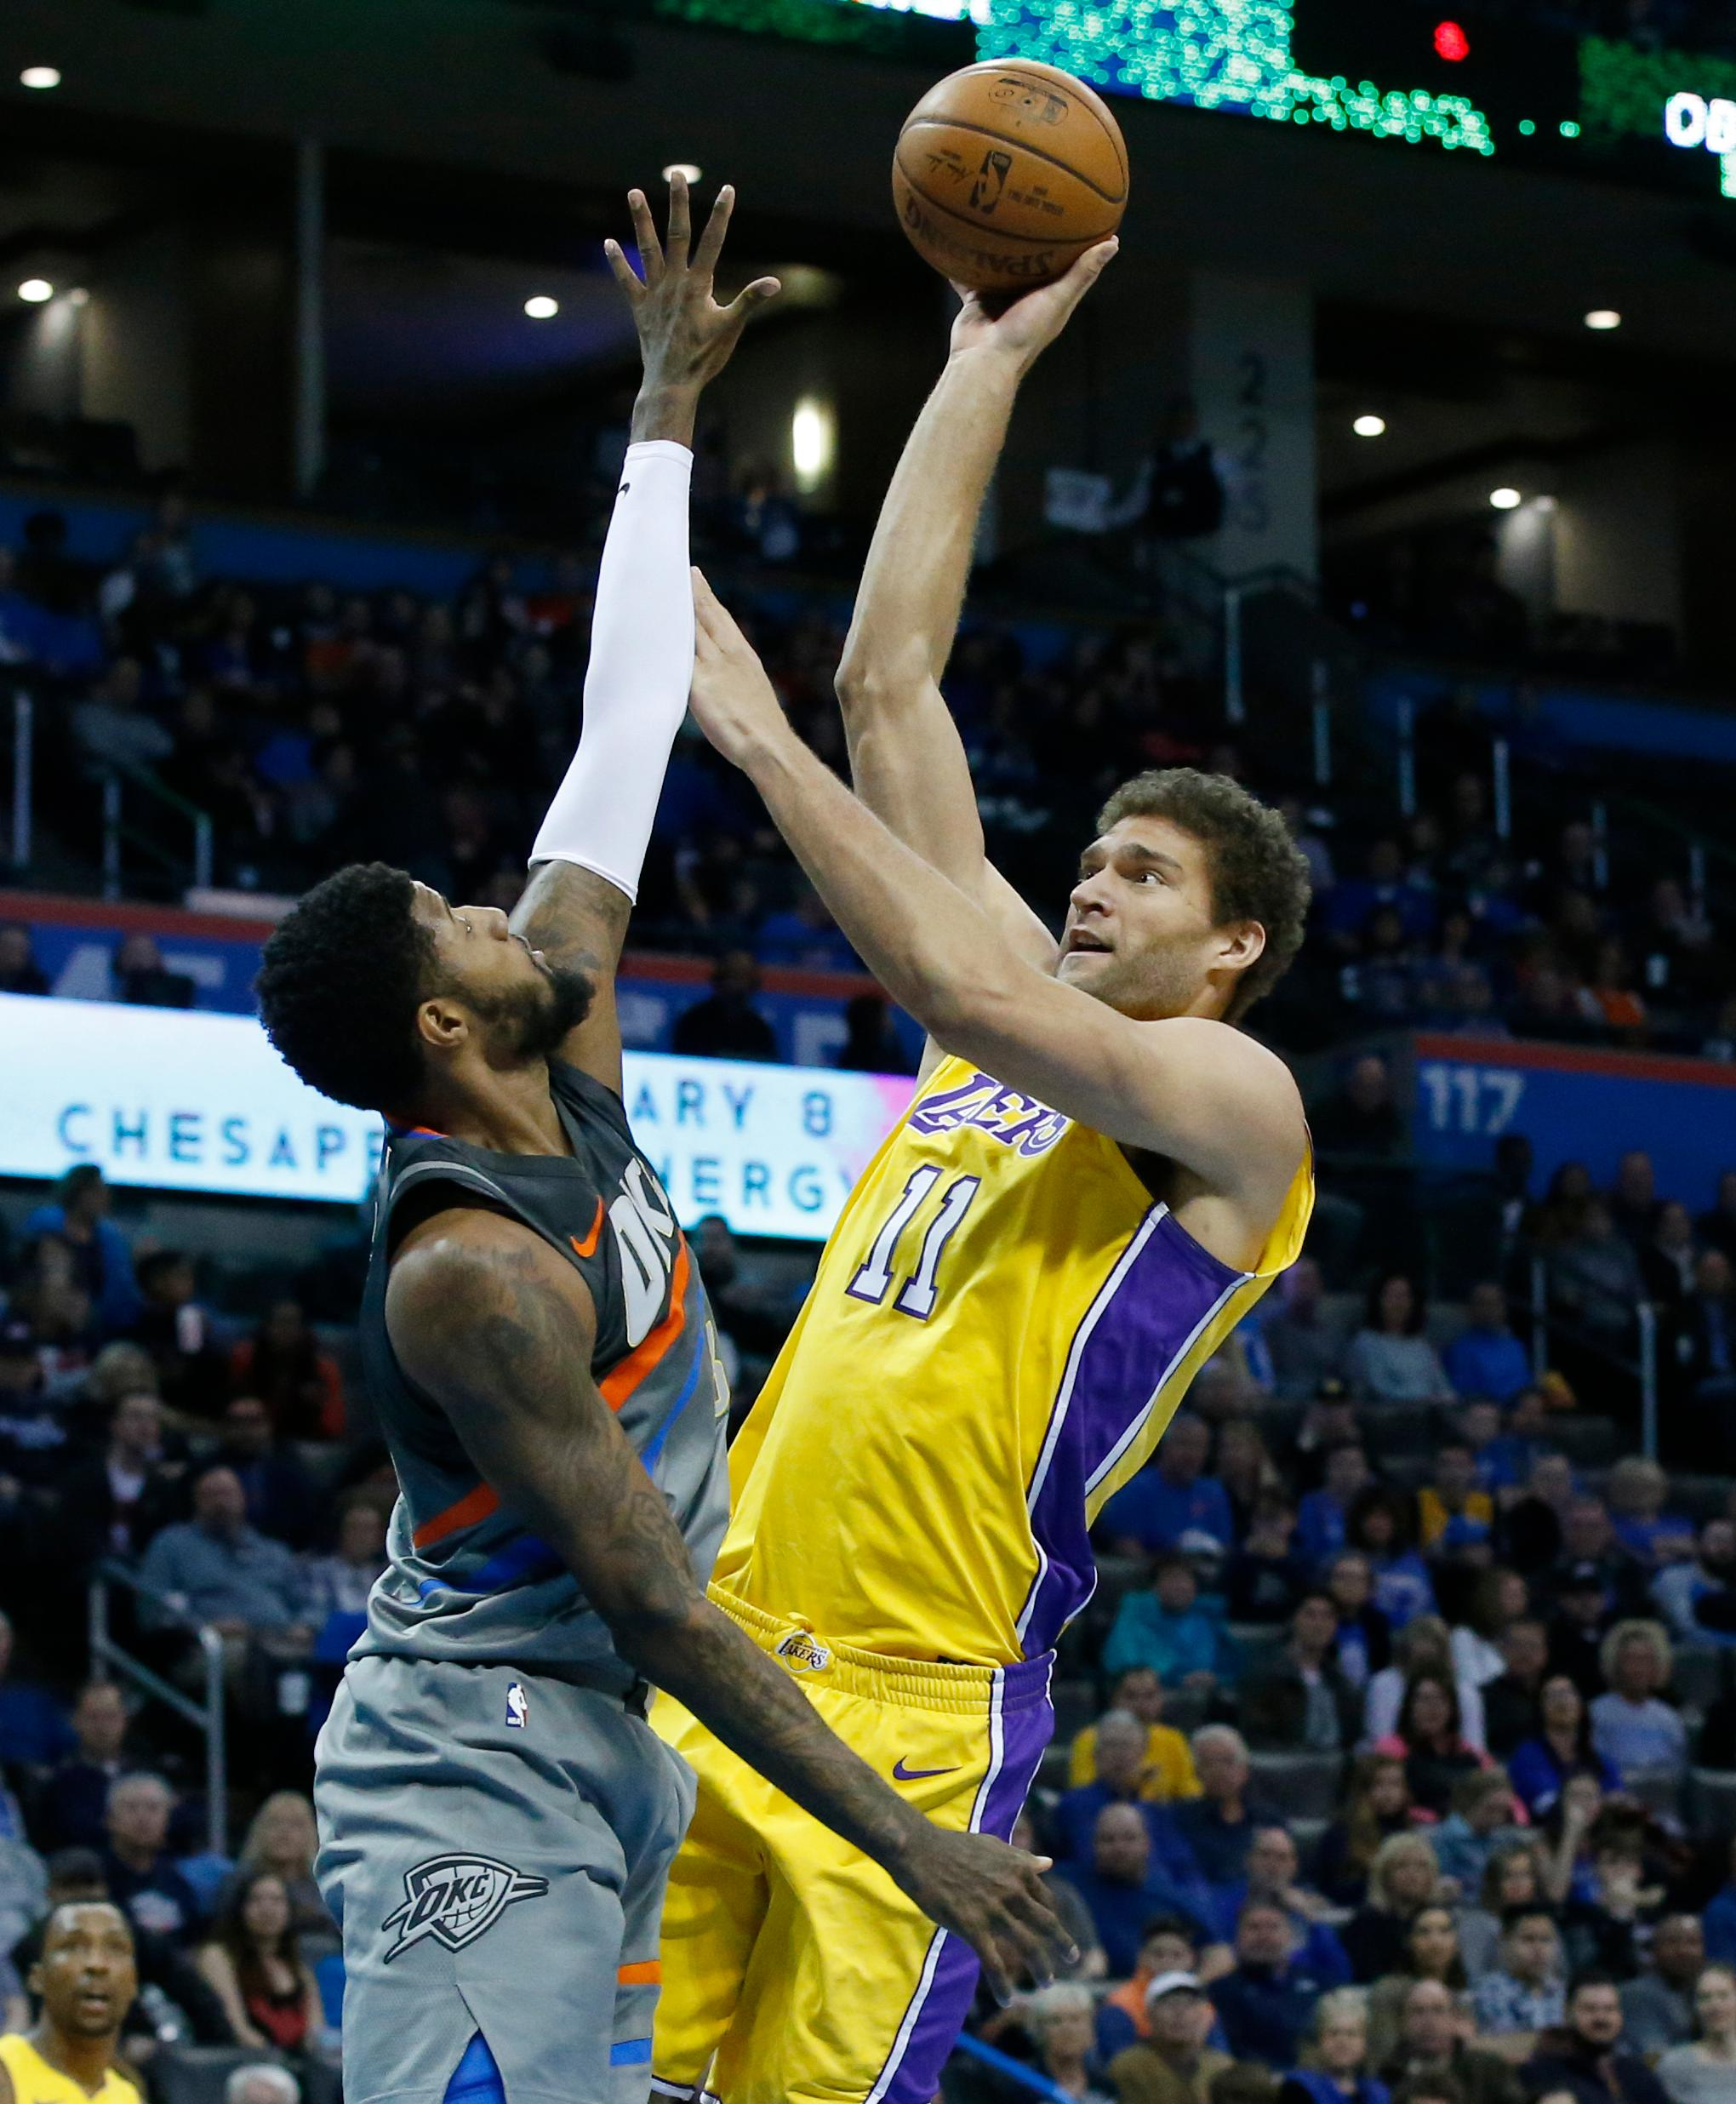 Los Angeles Lakers center Brook Lopez (11) shoots as Oklahoma City Thunder forward Paul George, left, defends in the first half of an NBA basketball game in Oklahoma City, Sunday, Feb. 4, 2018. (AP Photo/Sue Ogrocki)